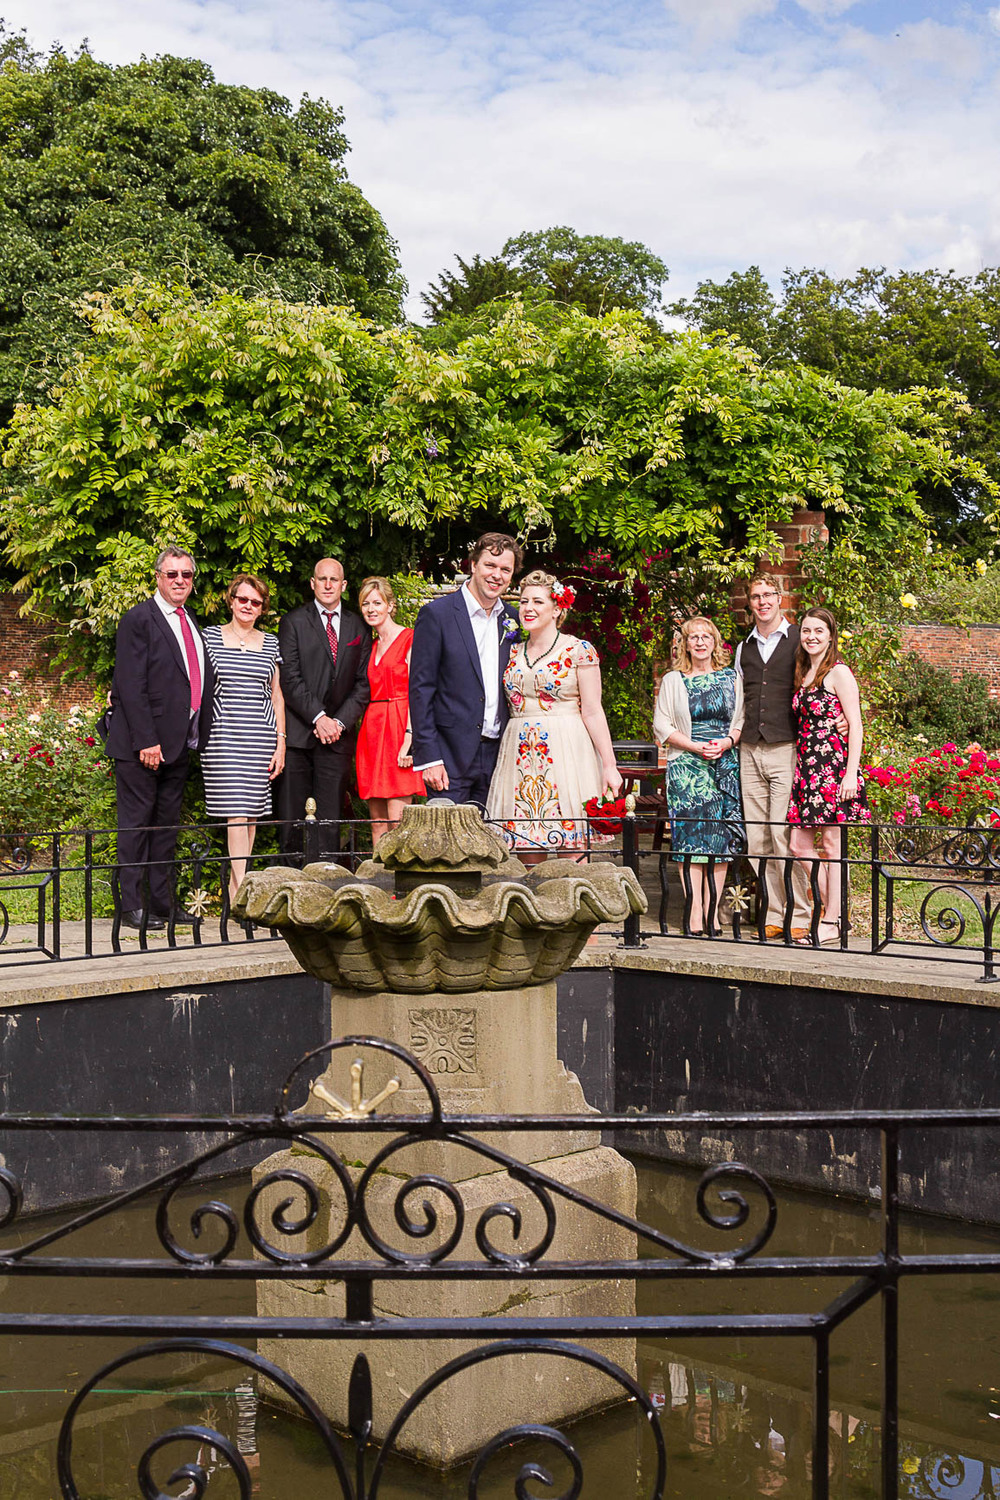 Kim & Mark_Wedding_Leeds_23.07.15_SJW Photography_Warrington_2325.jpg